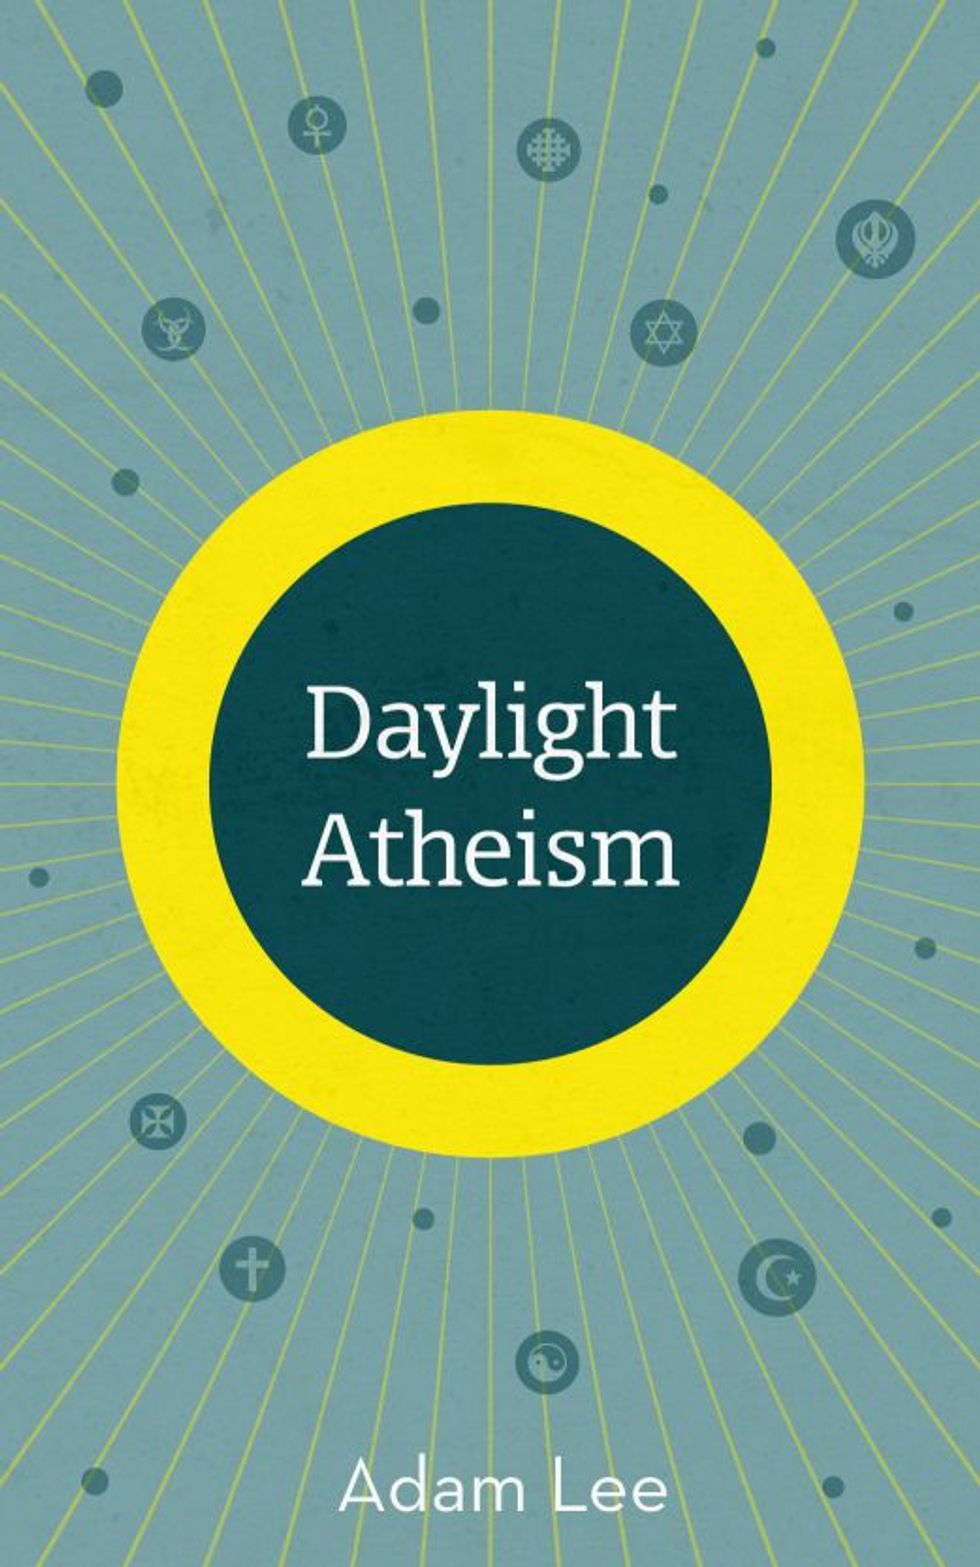 Daylight Atheism: The Book